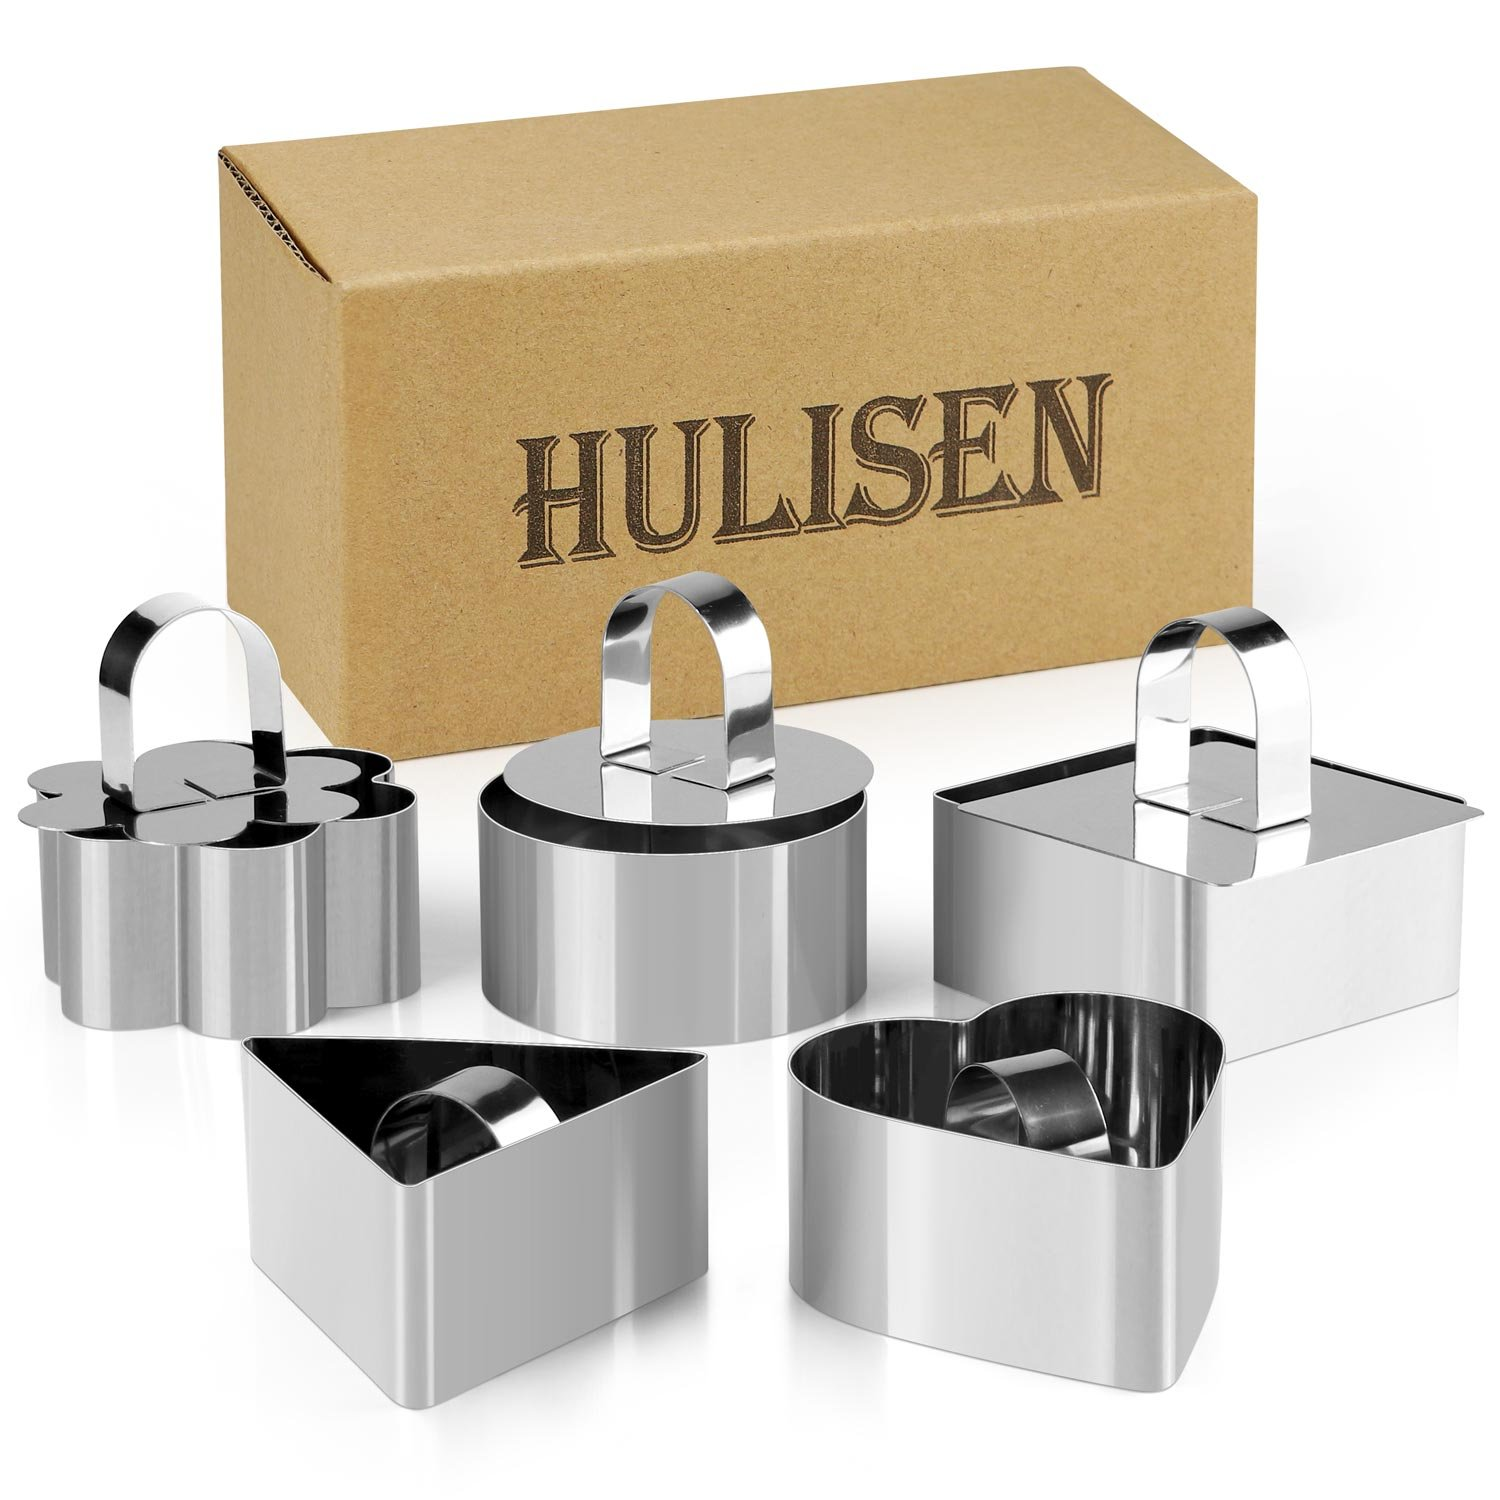 HULISEN 10 Pcs/Set Stainless Steel Cake Ring, 3 x 3 inch Square Dessert Mousse Mold with Pusher & Lifter Cooking Rings